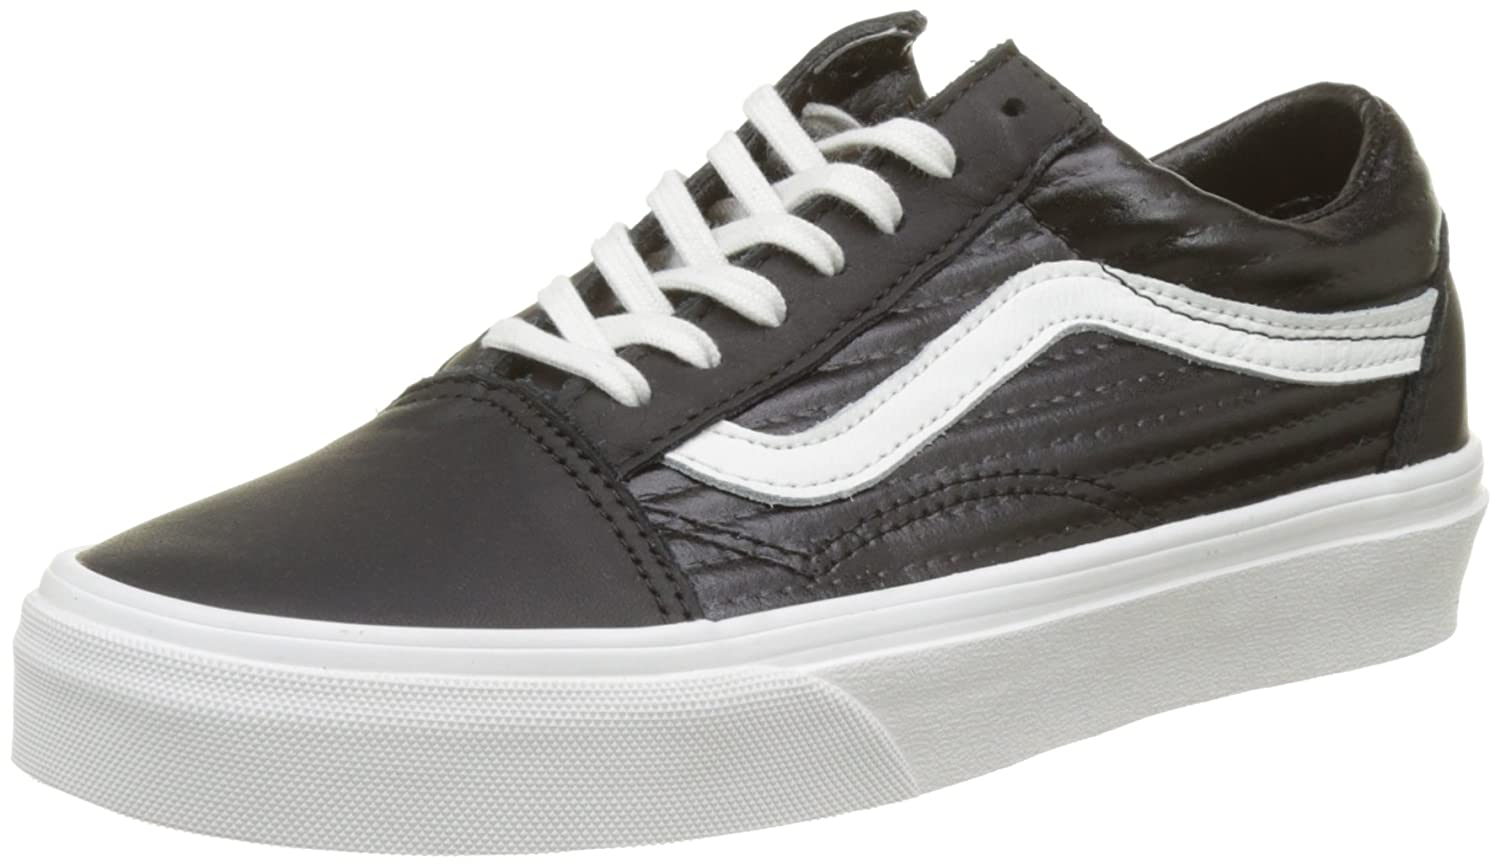 Vans Unisex Old Skool Classic Skate Shoes B01N5EPXF0 11 B(M) US Women / 9.5 D(M) US Men|Black/Blanc De Blanc